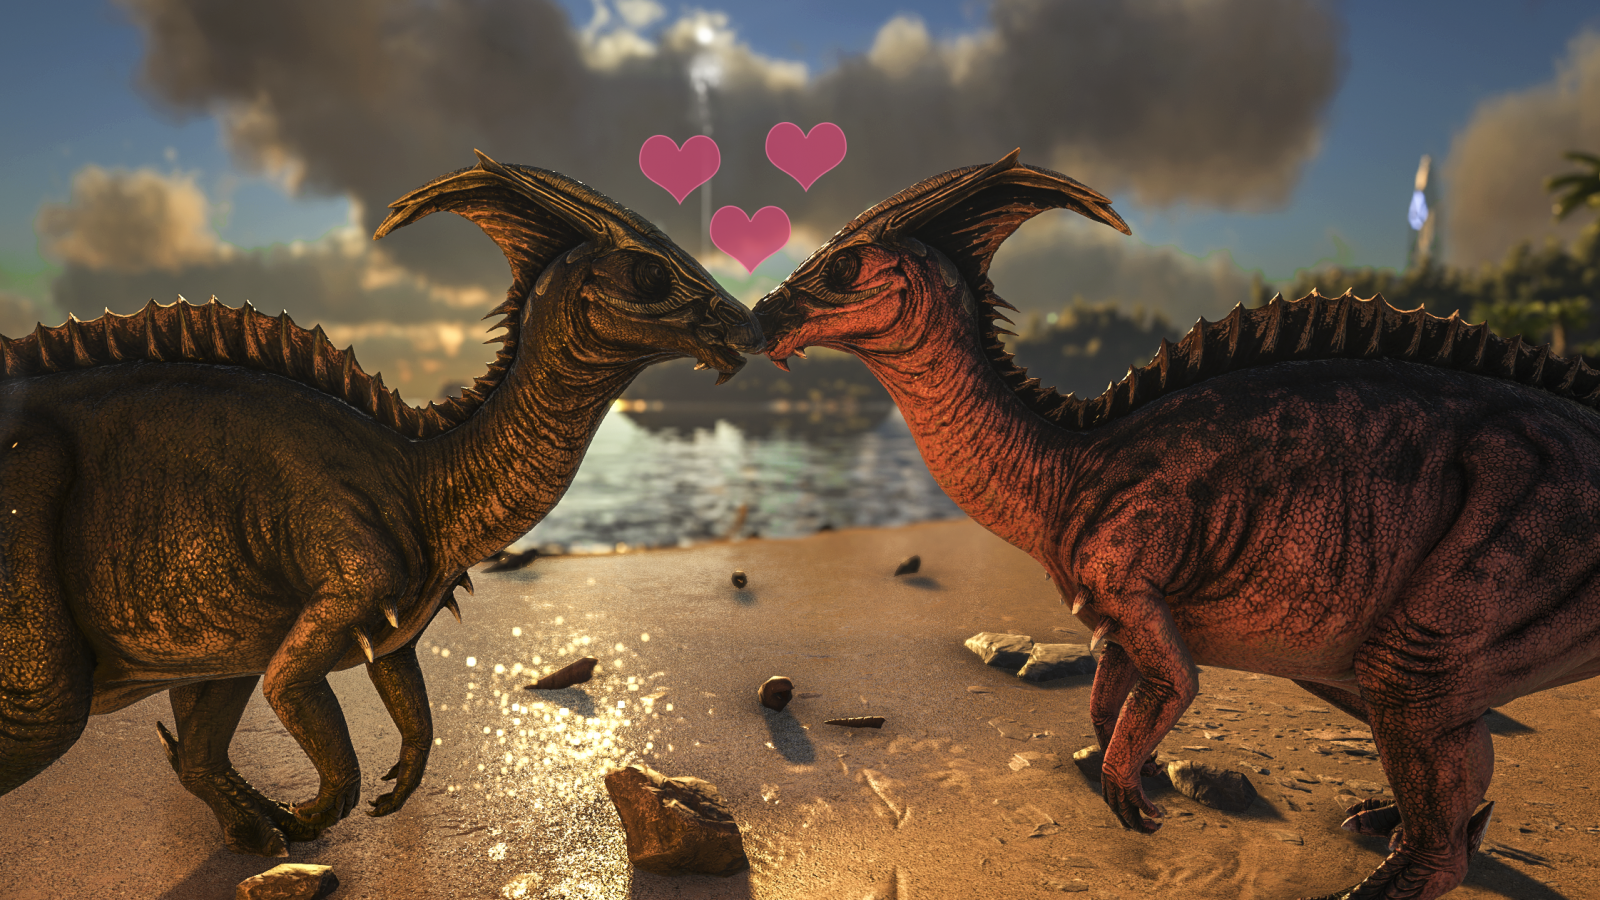 Valentine S Day Parasaurs Official Media Ark Official Community Forums Parasaurolophus amphibio, known as parasaur on the island, are docile plant eating dinosaurs. valentine s day parasaurs official